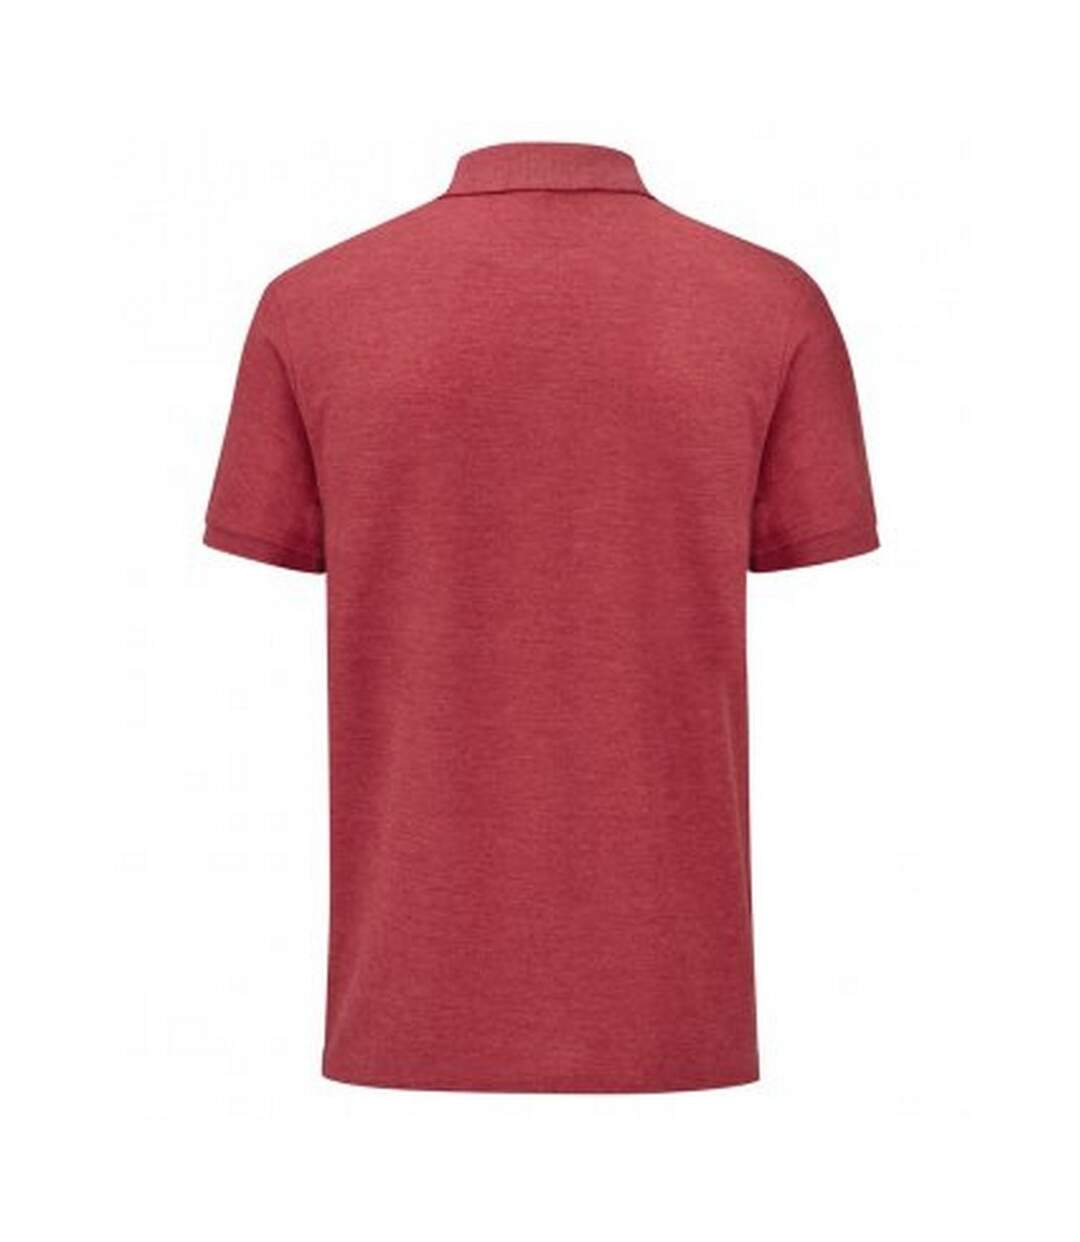 Fruit Of The Loom Mens Tailored Poly/Cotton Piqu Polo Shirt (Heather Red) - UTPC3572